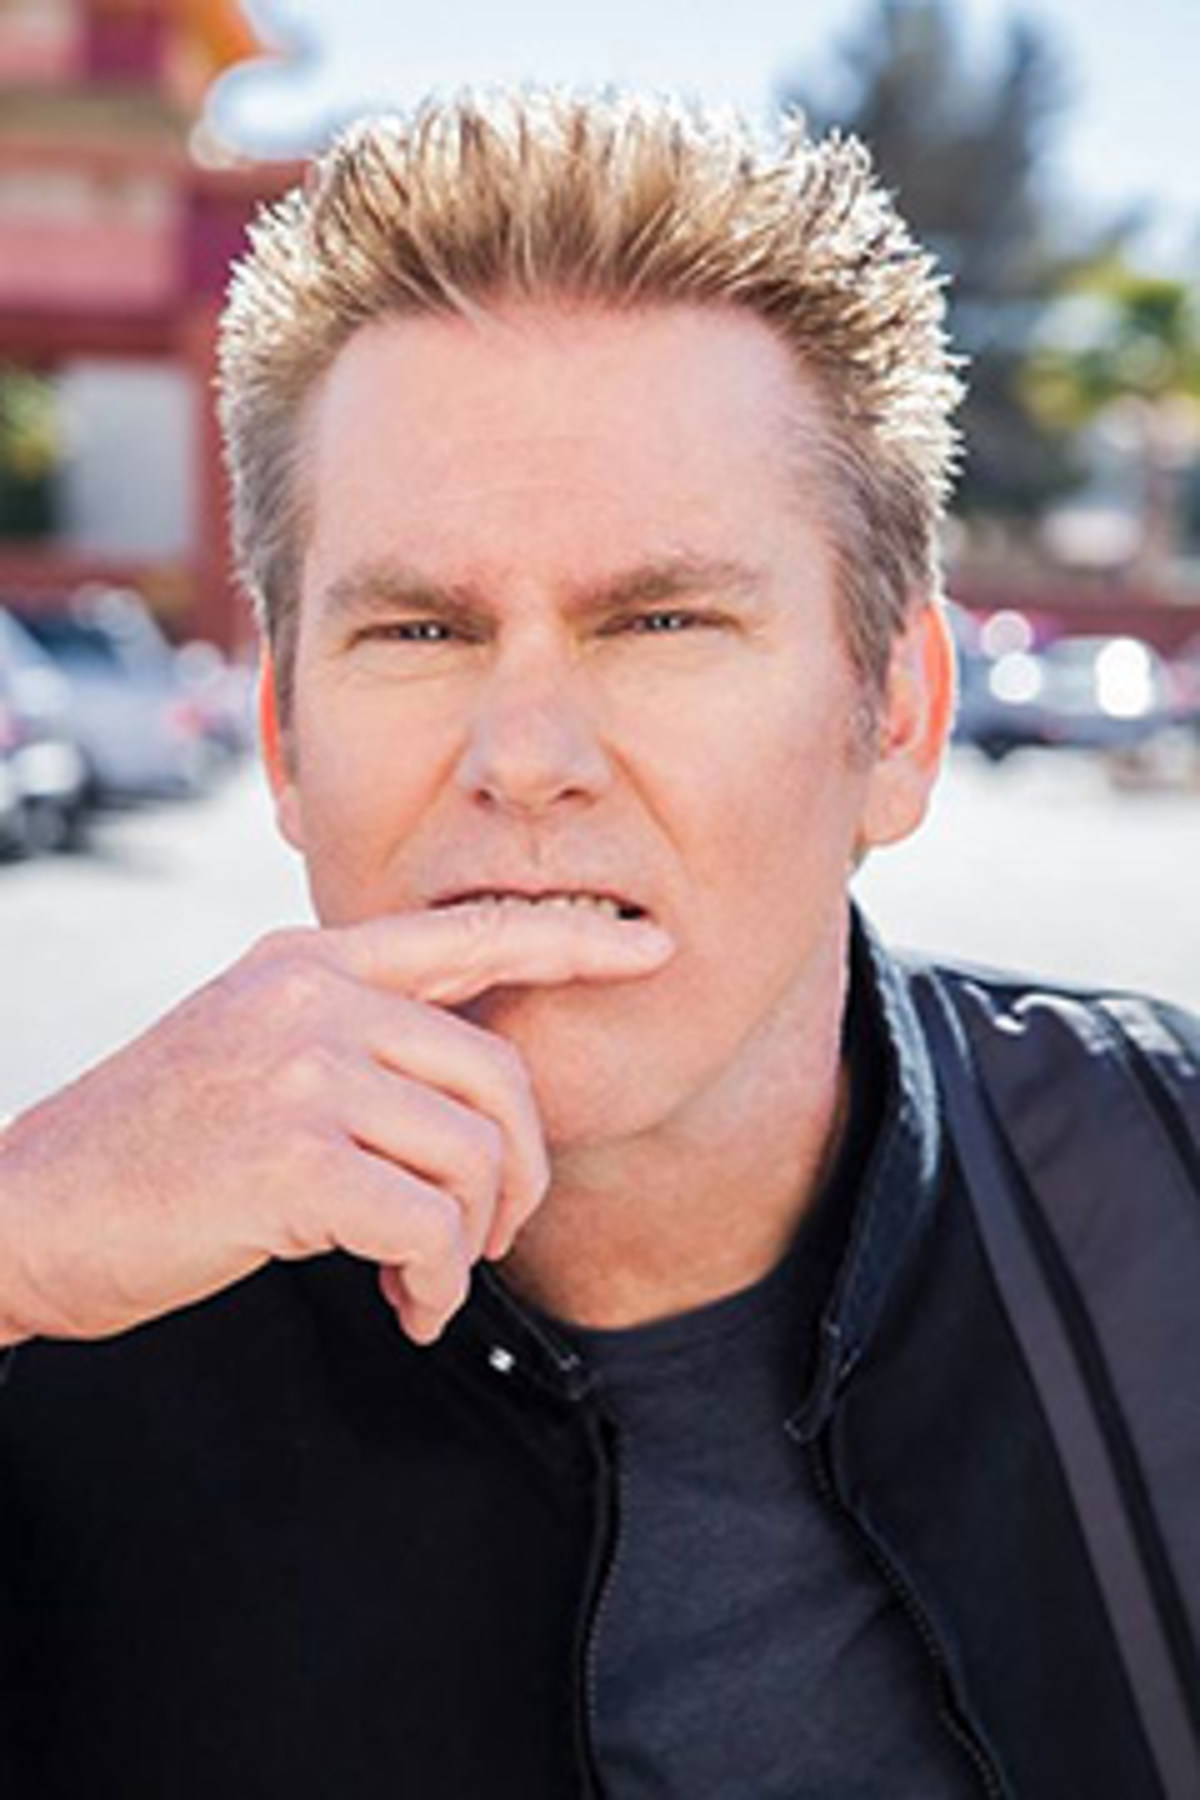 Brian Regan playing Radio City Music Hall which will be broadcast